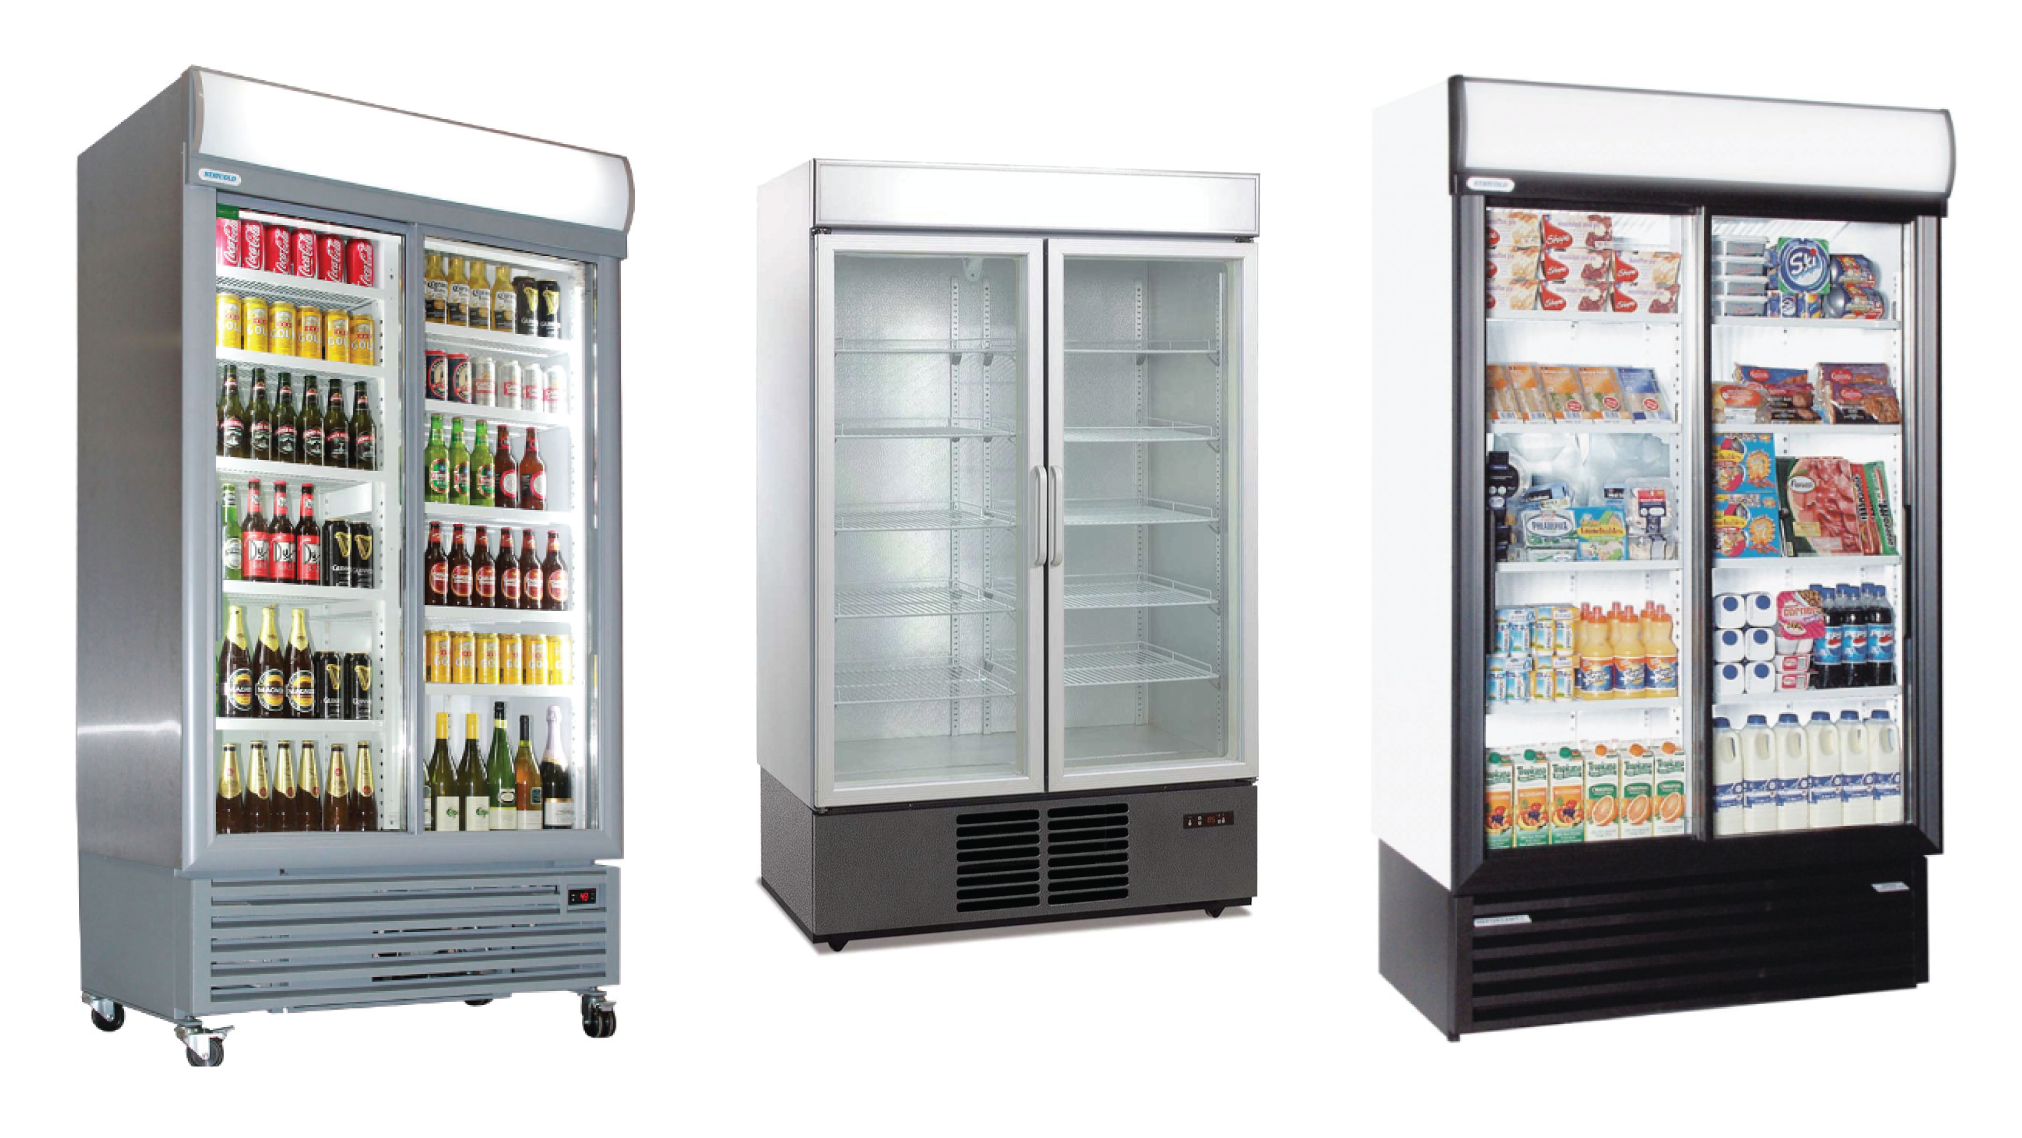 Double Glass Door Beverage Chiller In Bangladesh Call For Buy 01711 998626 Email Sales Nobarunbd Com 2 Double Glass Doors Beverage Refrigerator Glass Door